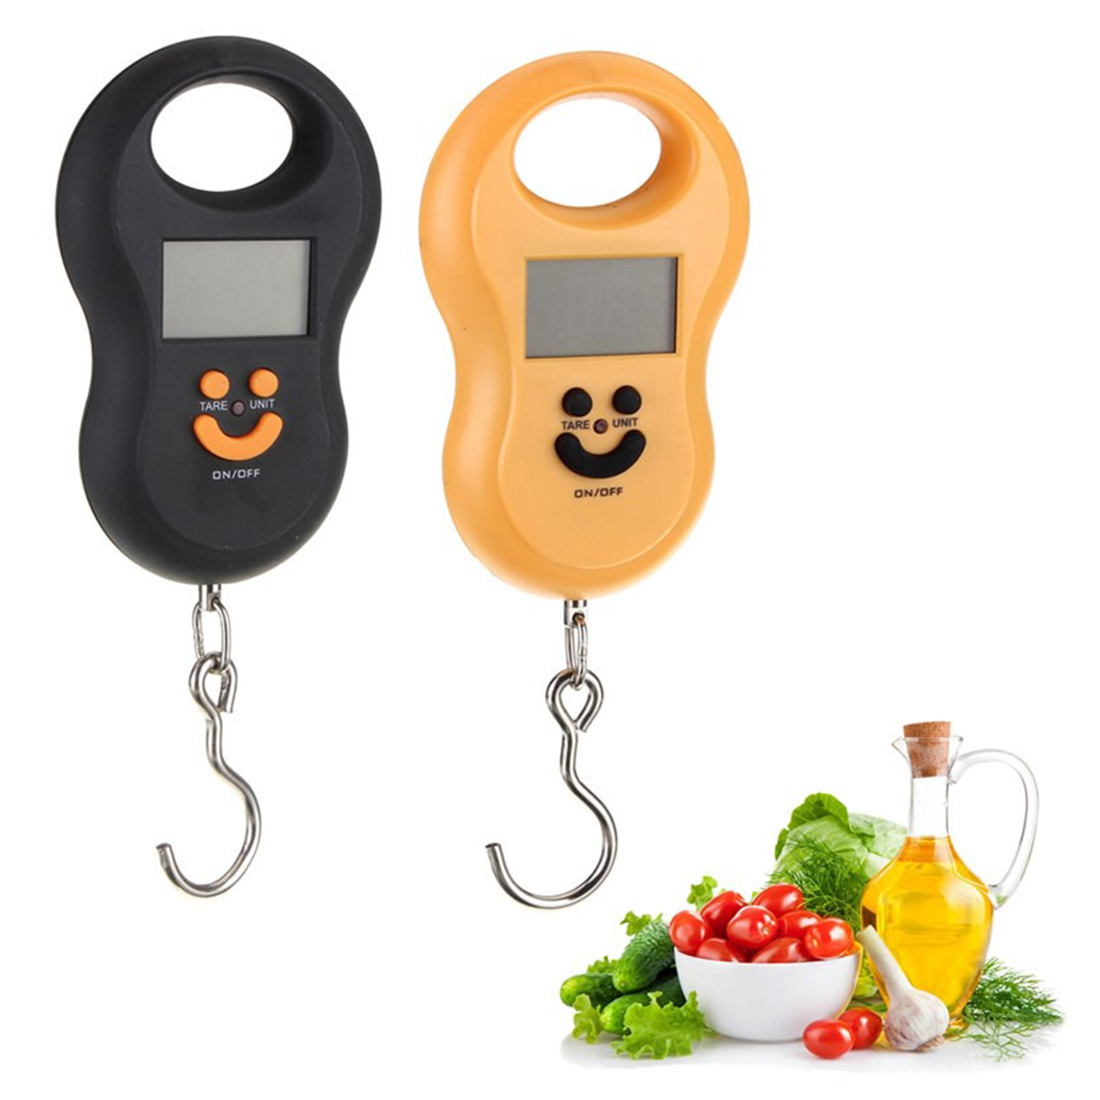 New Portable Hanging Scale 50Kg /10g LCD Digital Blue Backlight Fishing Pocket Weight Luggage Scales Color Random